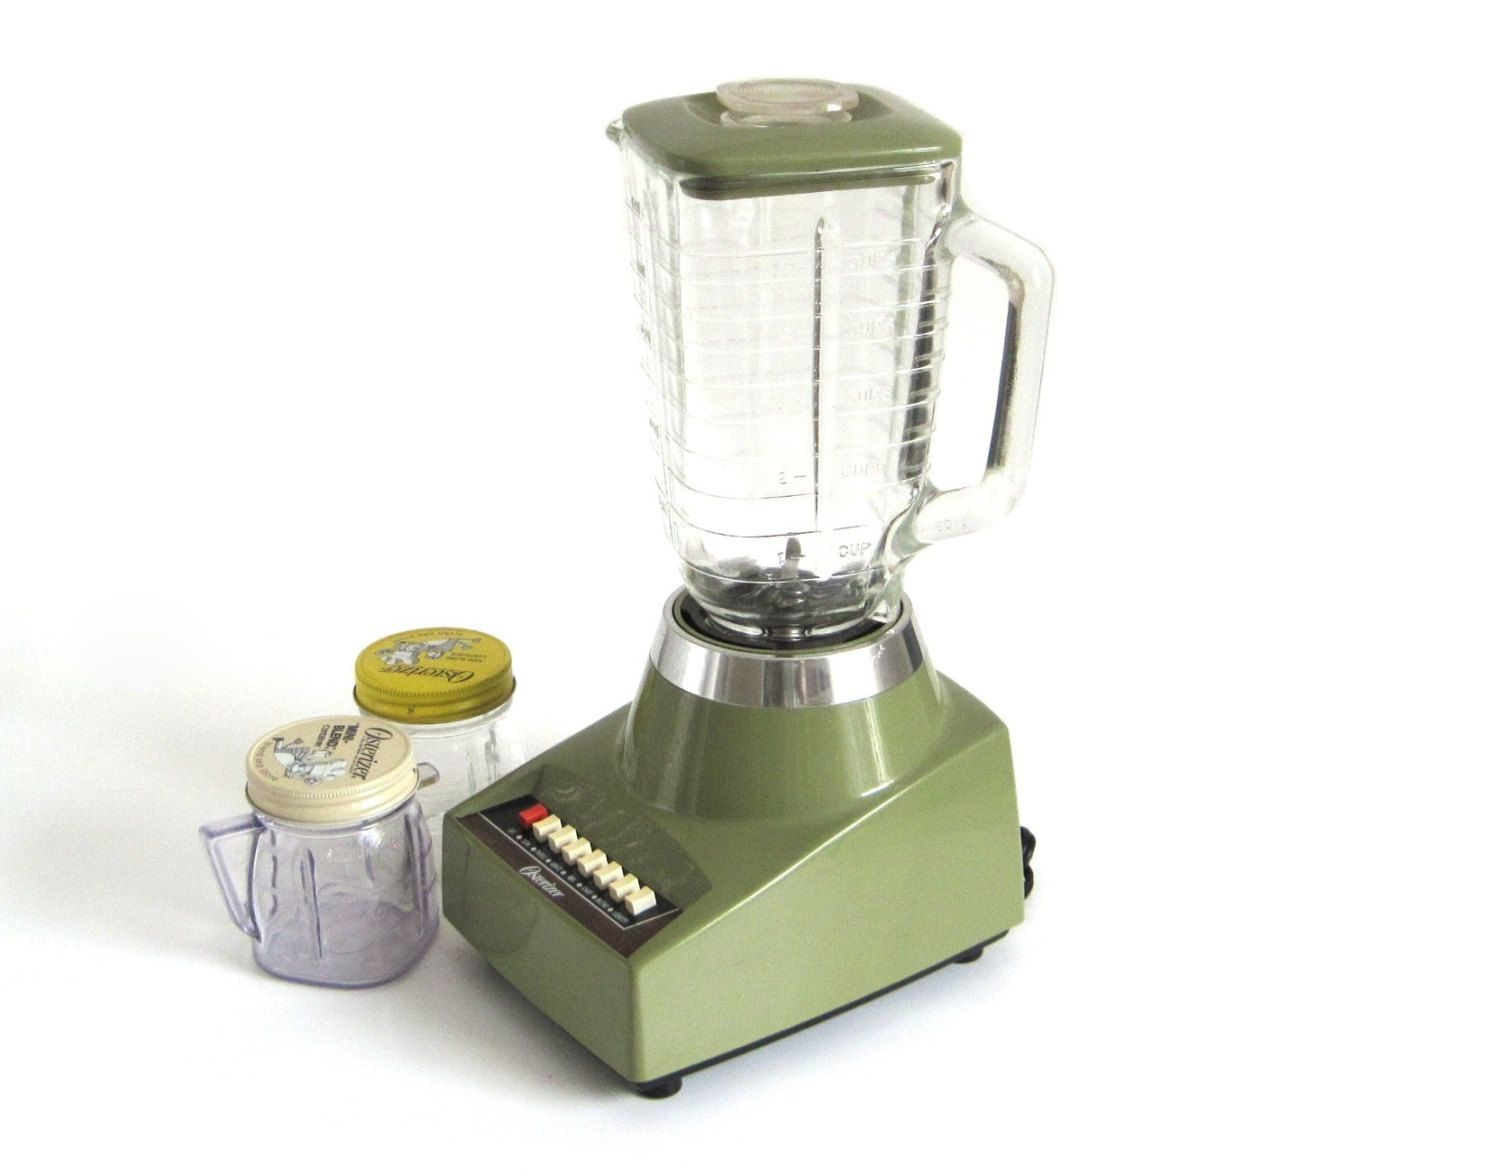 Kitchen small appliances usa - New To Lauraslastditch On Etsy Oster Blender Made In Usa 1970s Avocado Green Kitchen Appliance